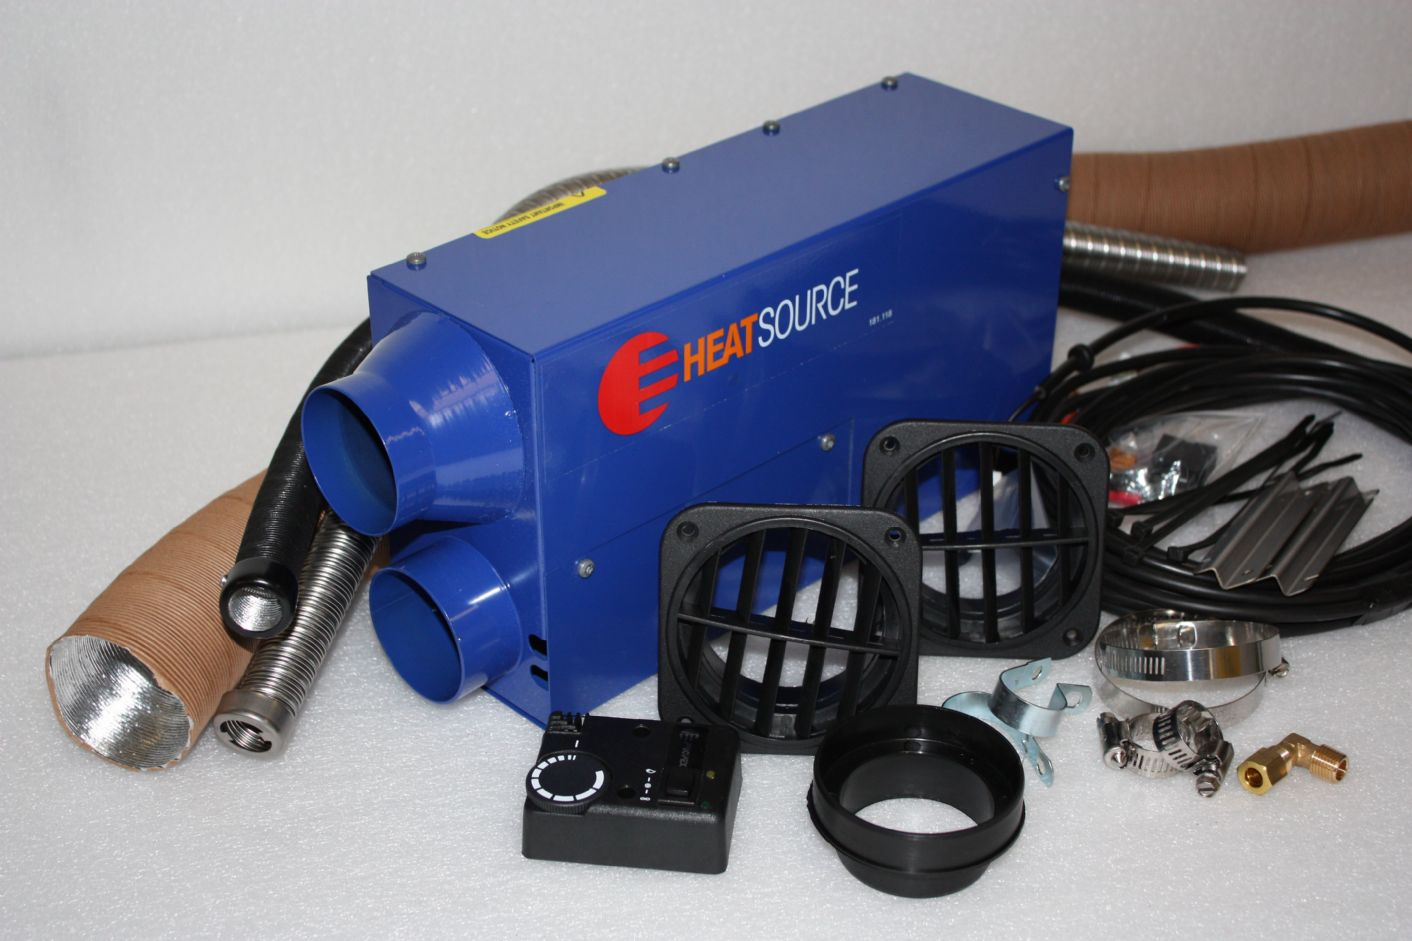 Propex heatsource hs2000 heater unit single outlet for Best heating source for home